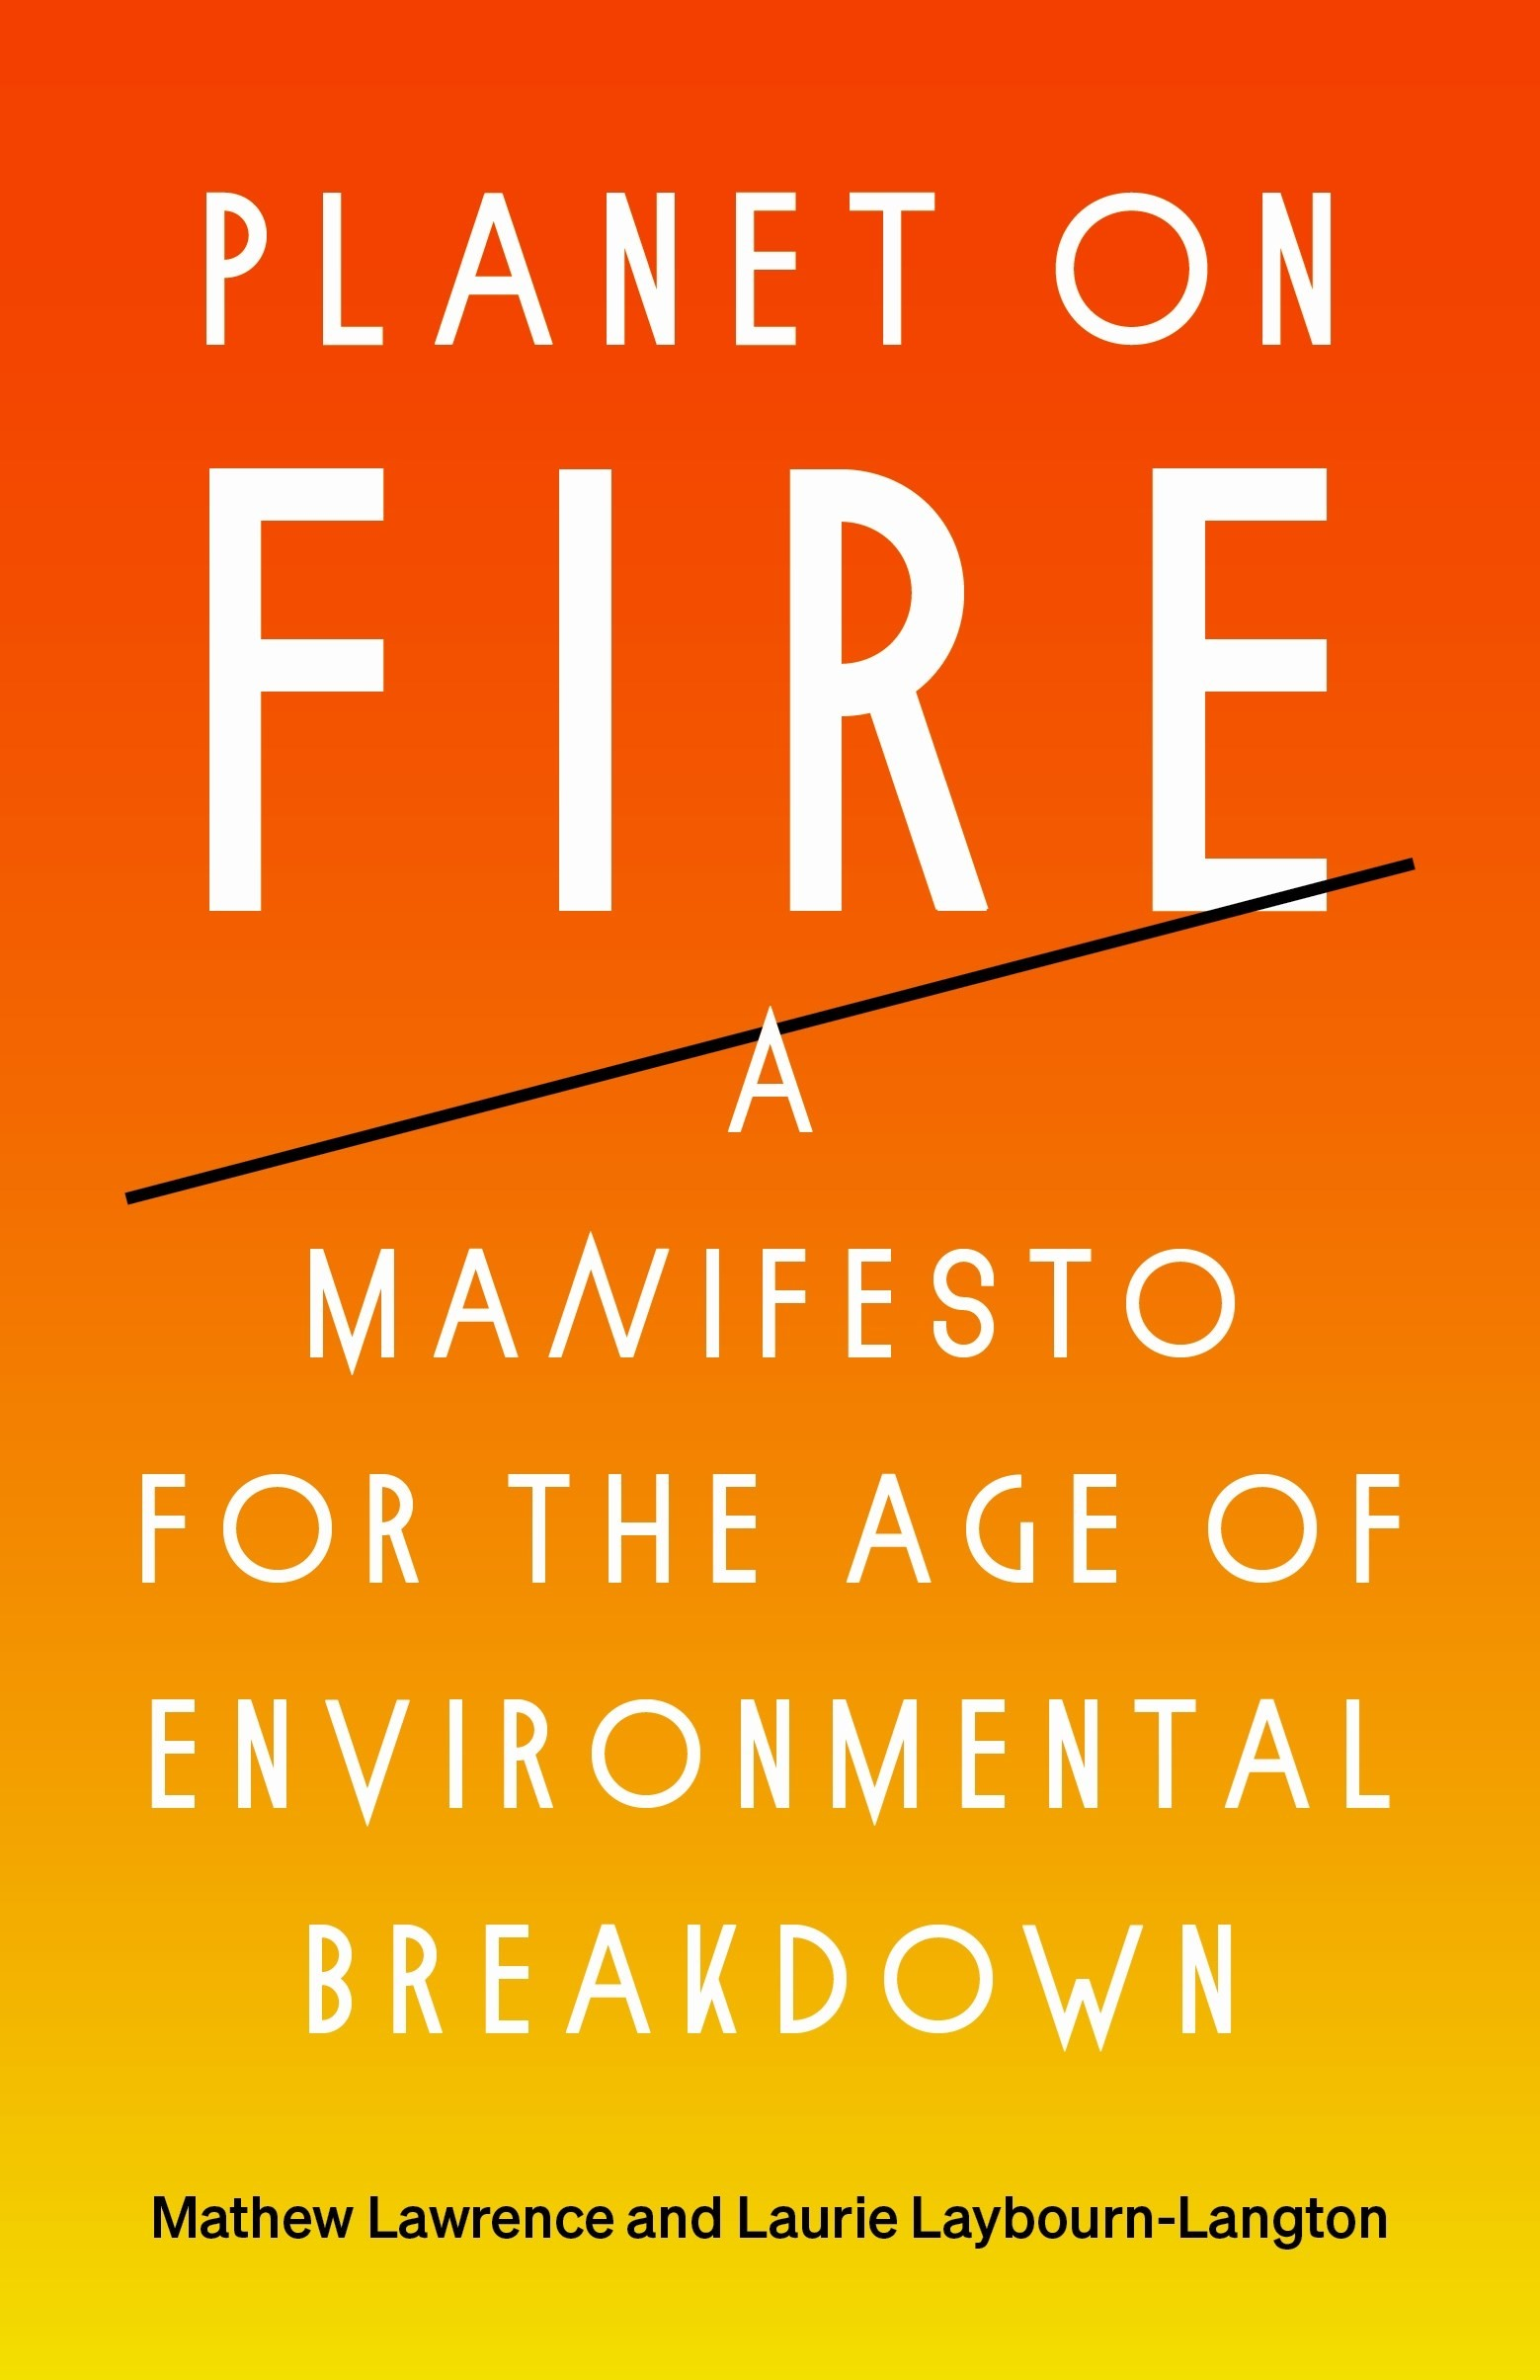 A Manifesto for the Age of Environmental Breakdown